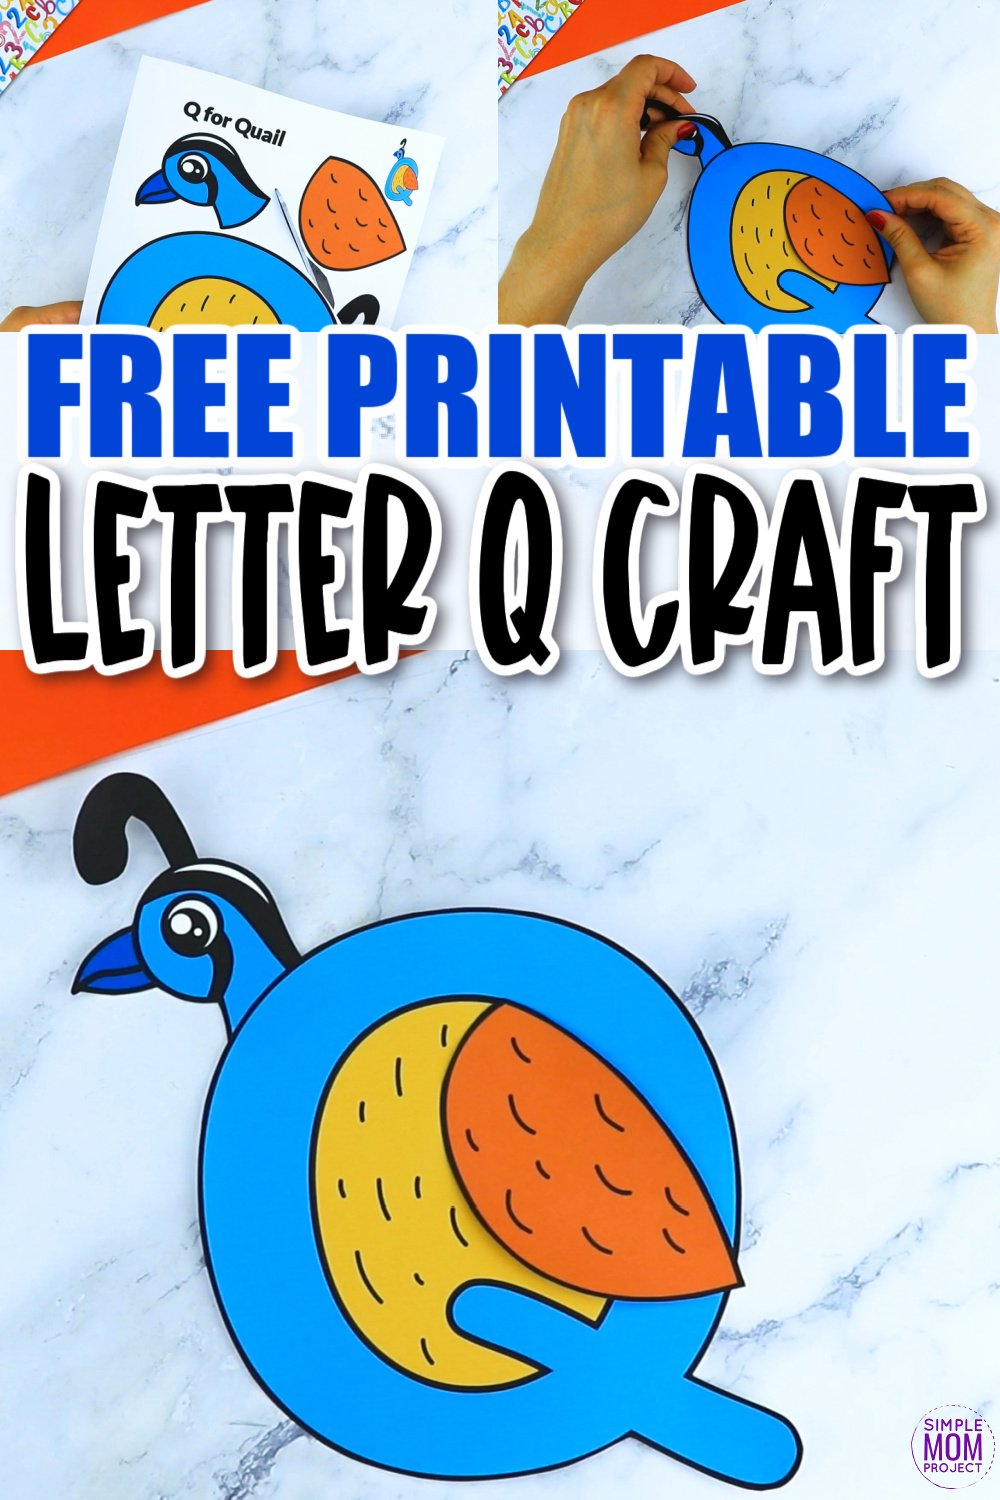 Q is for Quail Printable Craft Quail Letter Letter Q Craft for Kids, preschoolers, toddlers and kindergartners